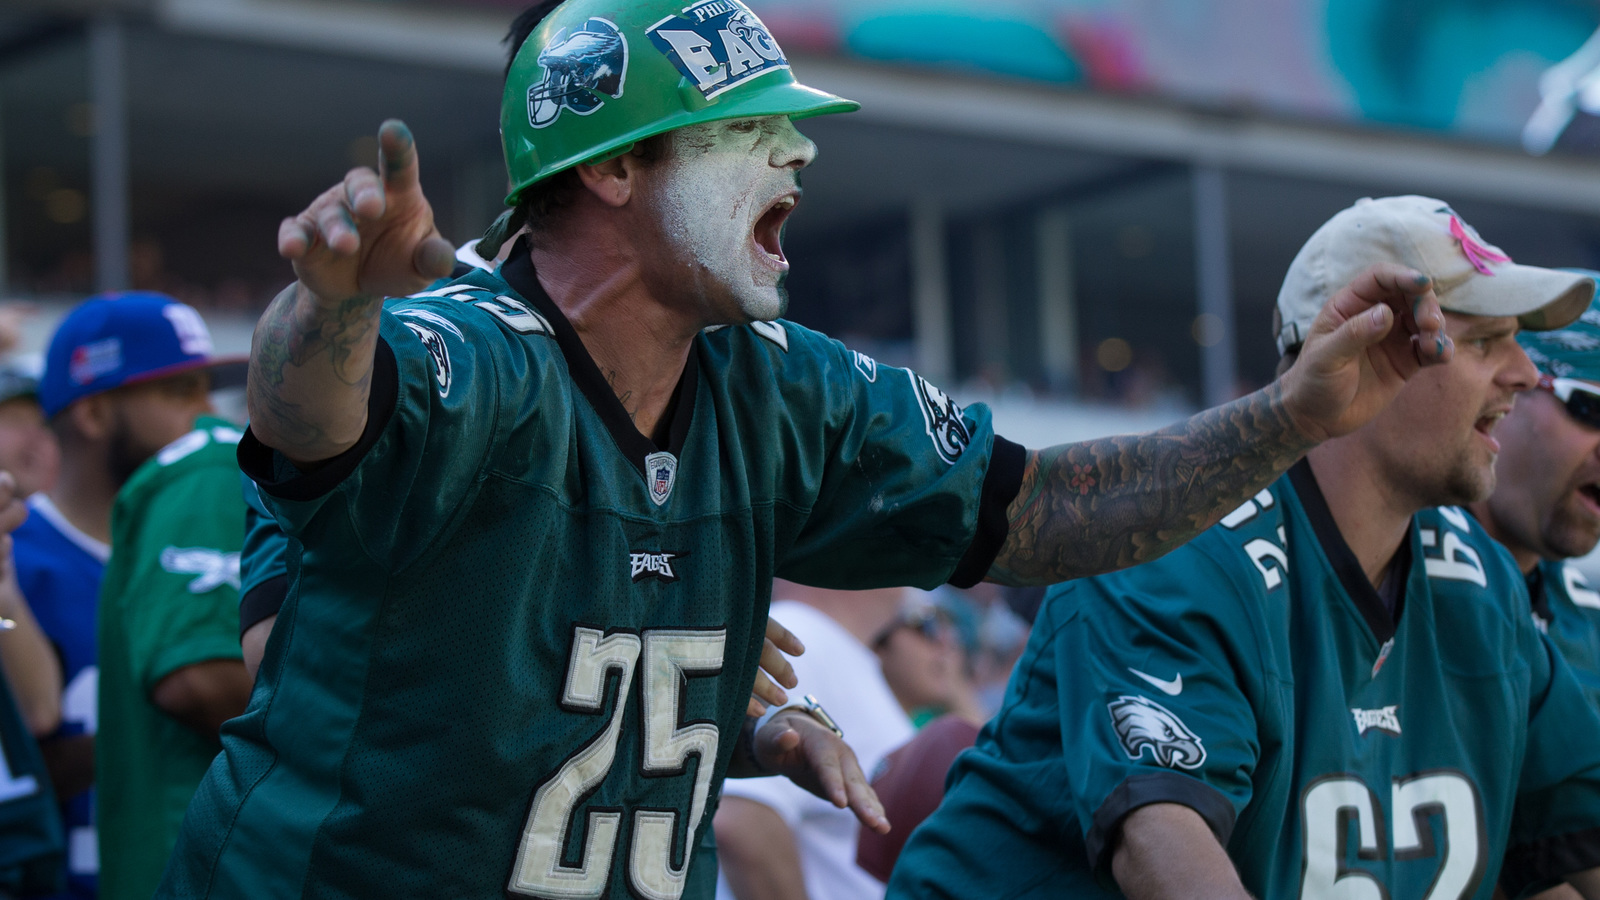 philly fans Relive some of the more unfortunate times of philly fans misbehaving.